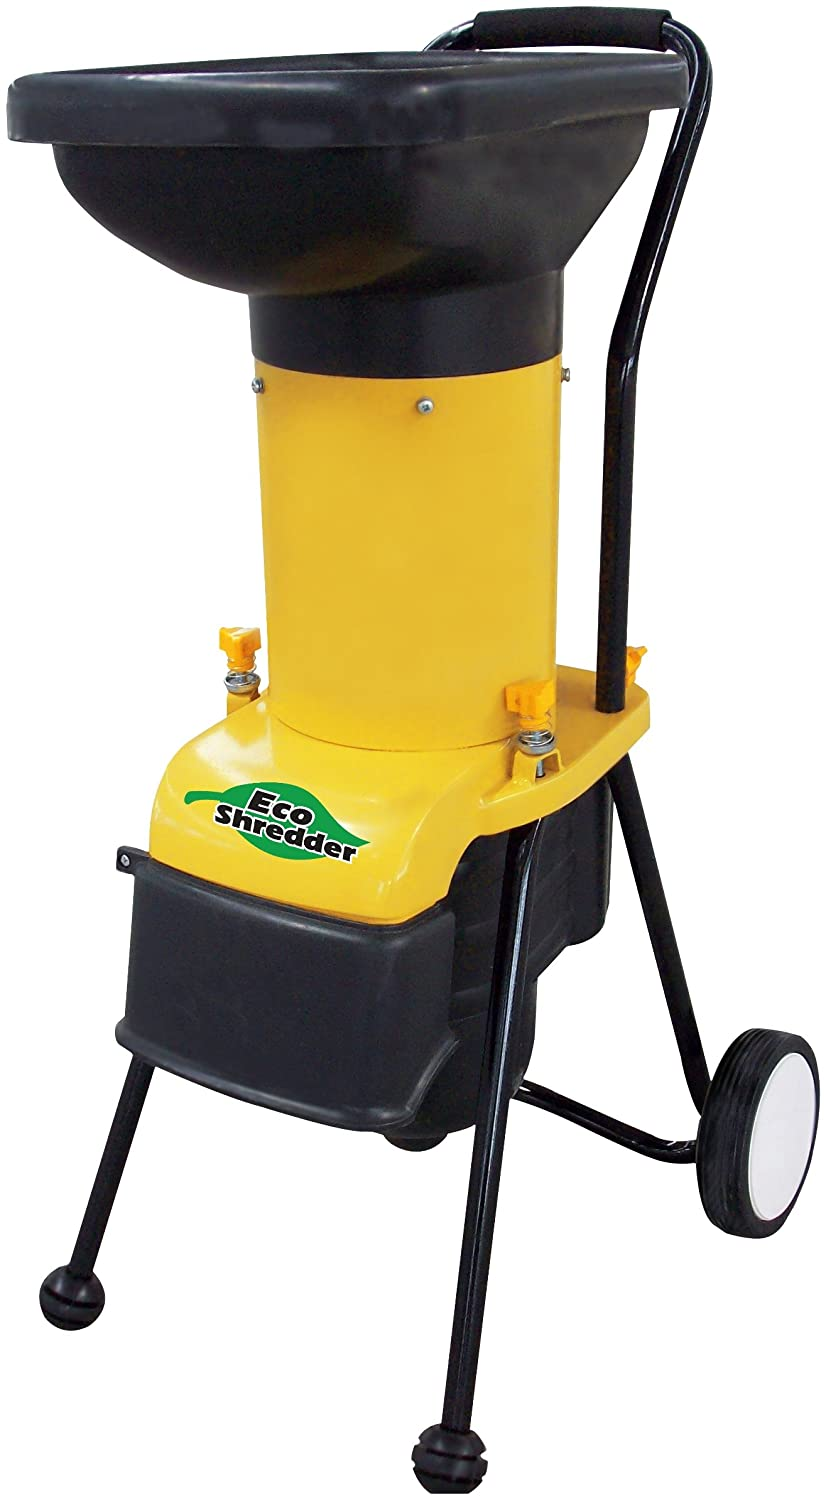 Eco-Shredder ES1600 14-Amp Electric Chipper / Shredder / Mulcher